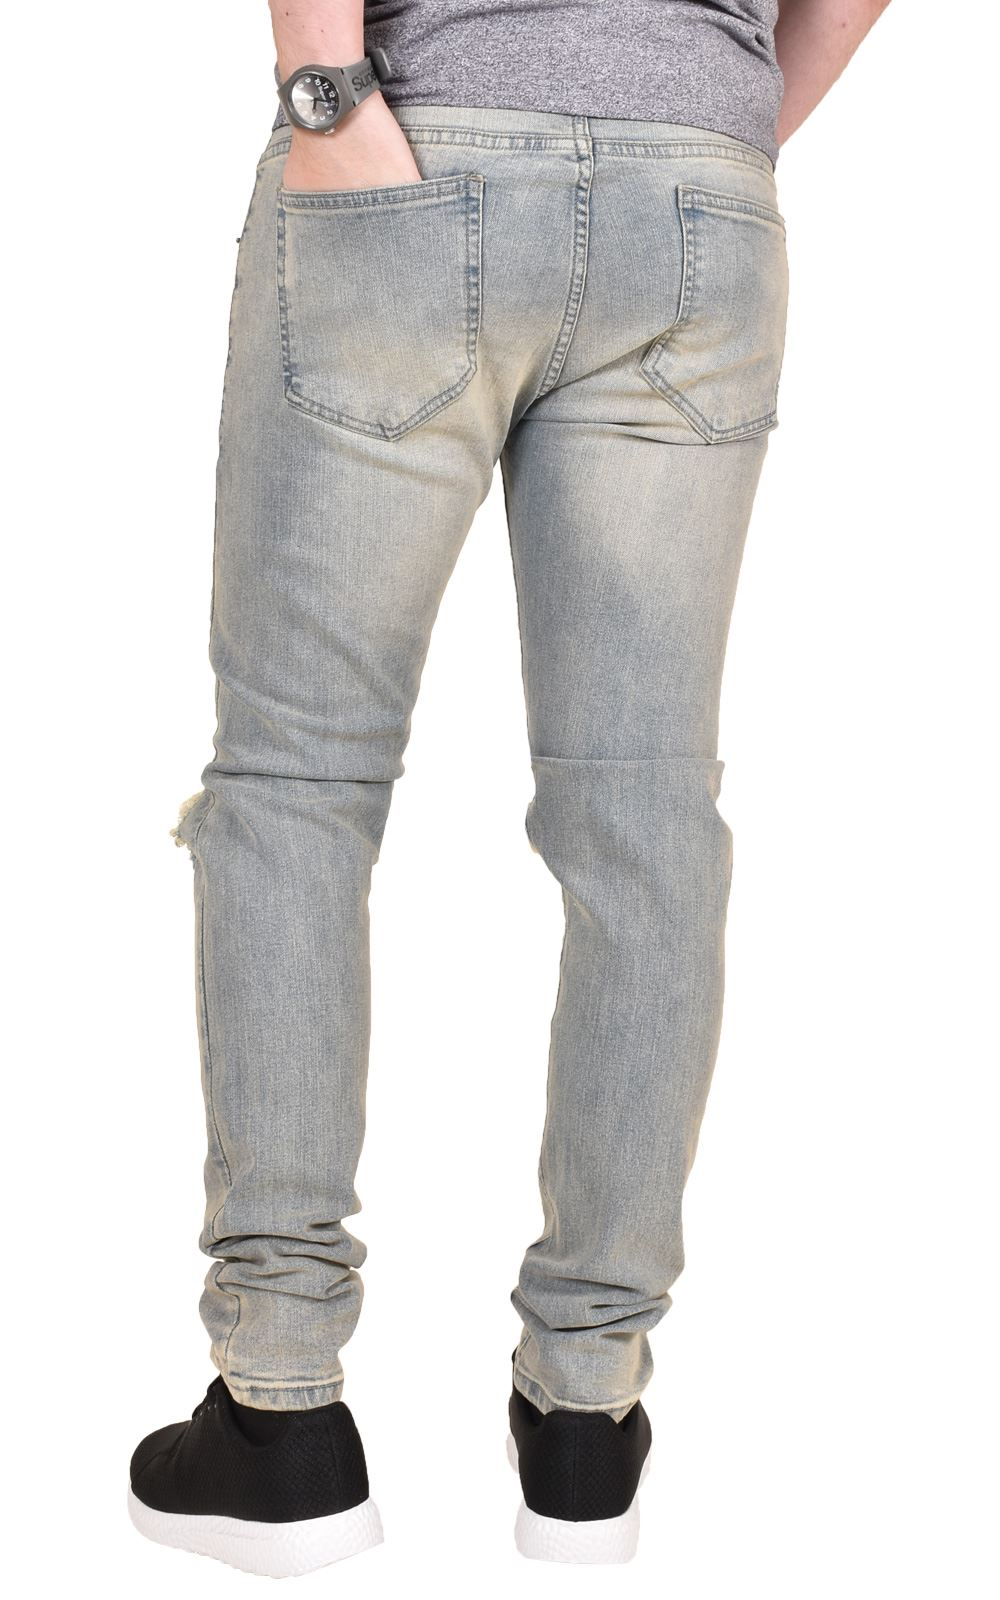 d33b1e7793a9f Mens Knee Ripped Jeans Skinny Fit Stretchable Azire Branded Denim ...